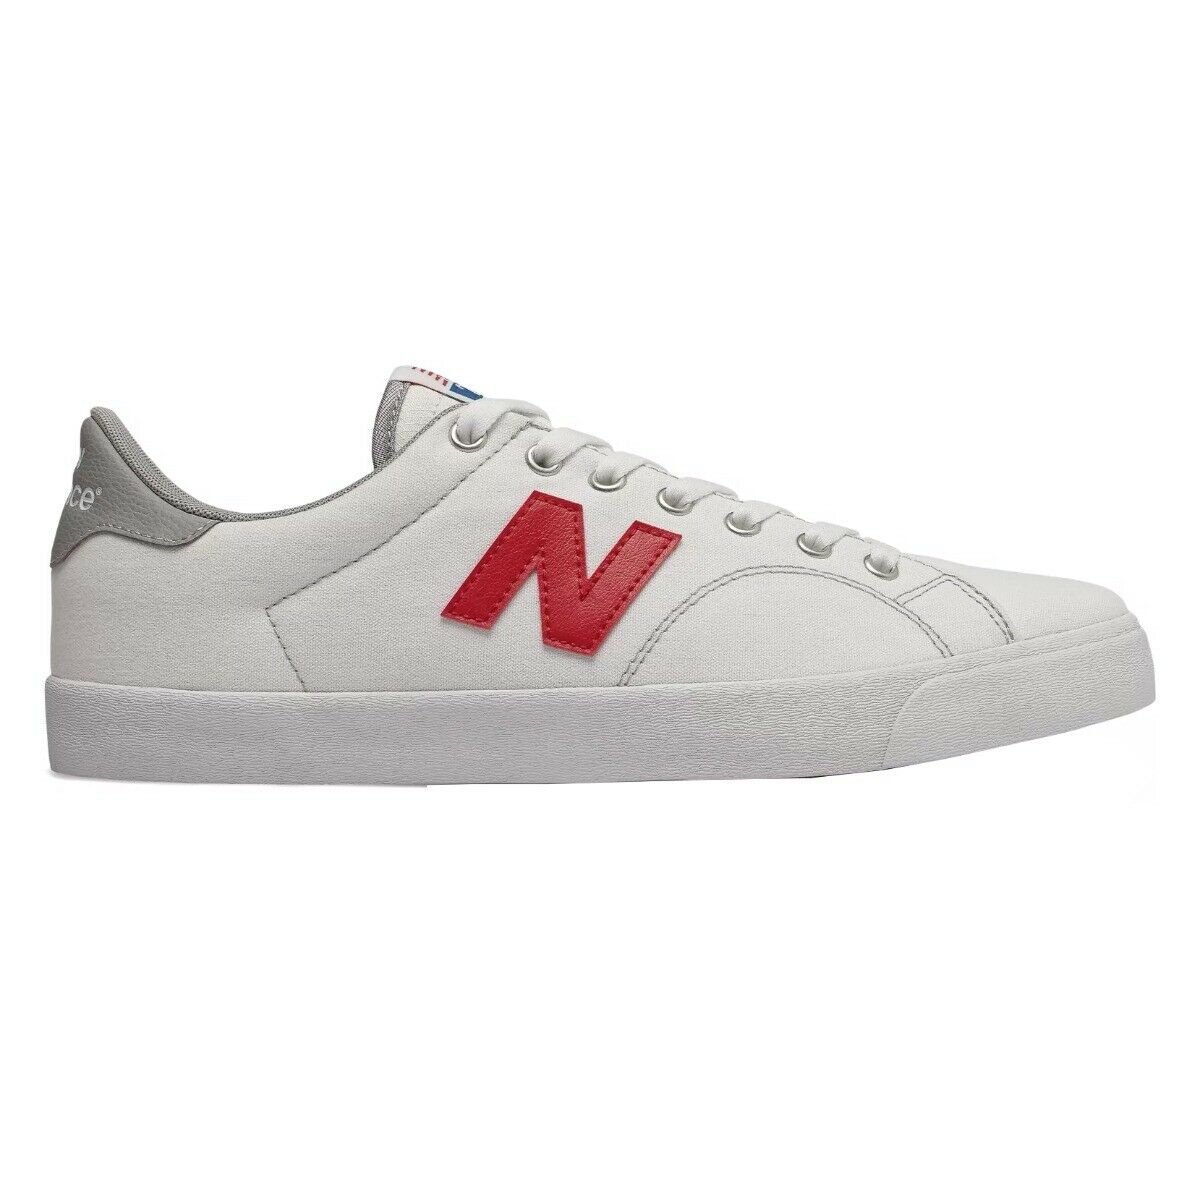 New Balance NEW Men's Men's Men's 210 All Coasts shoes - White   Red BNWT d36823